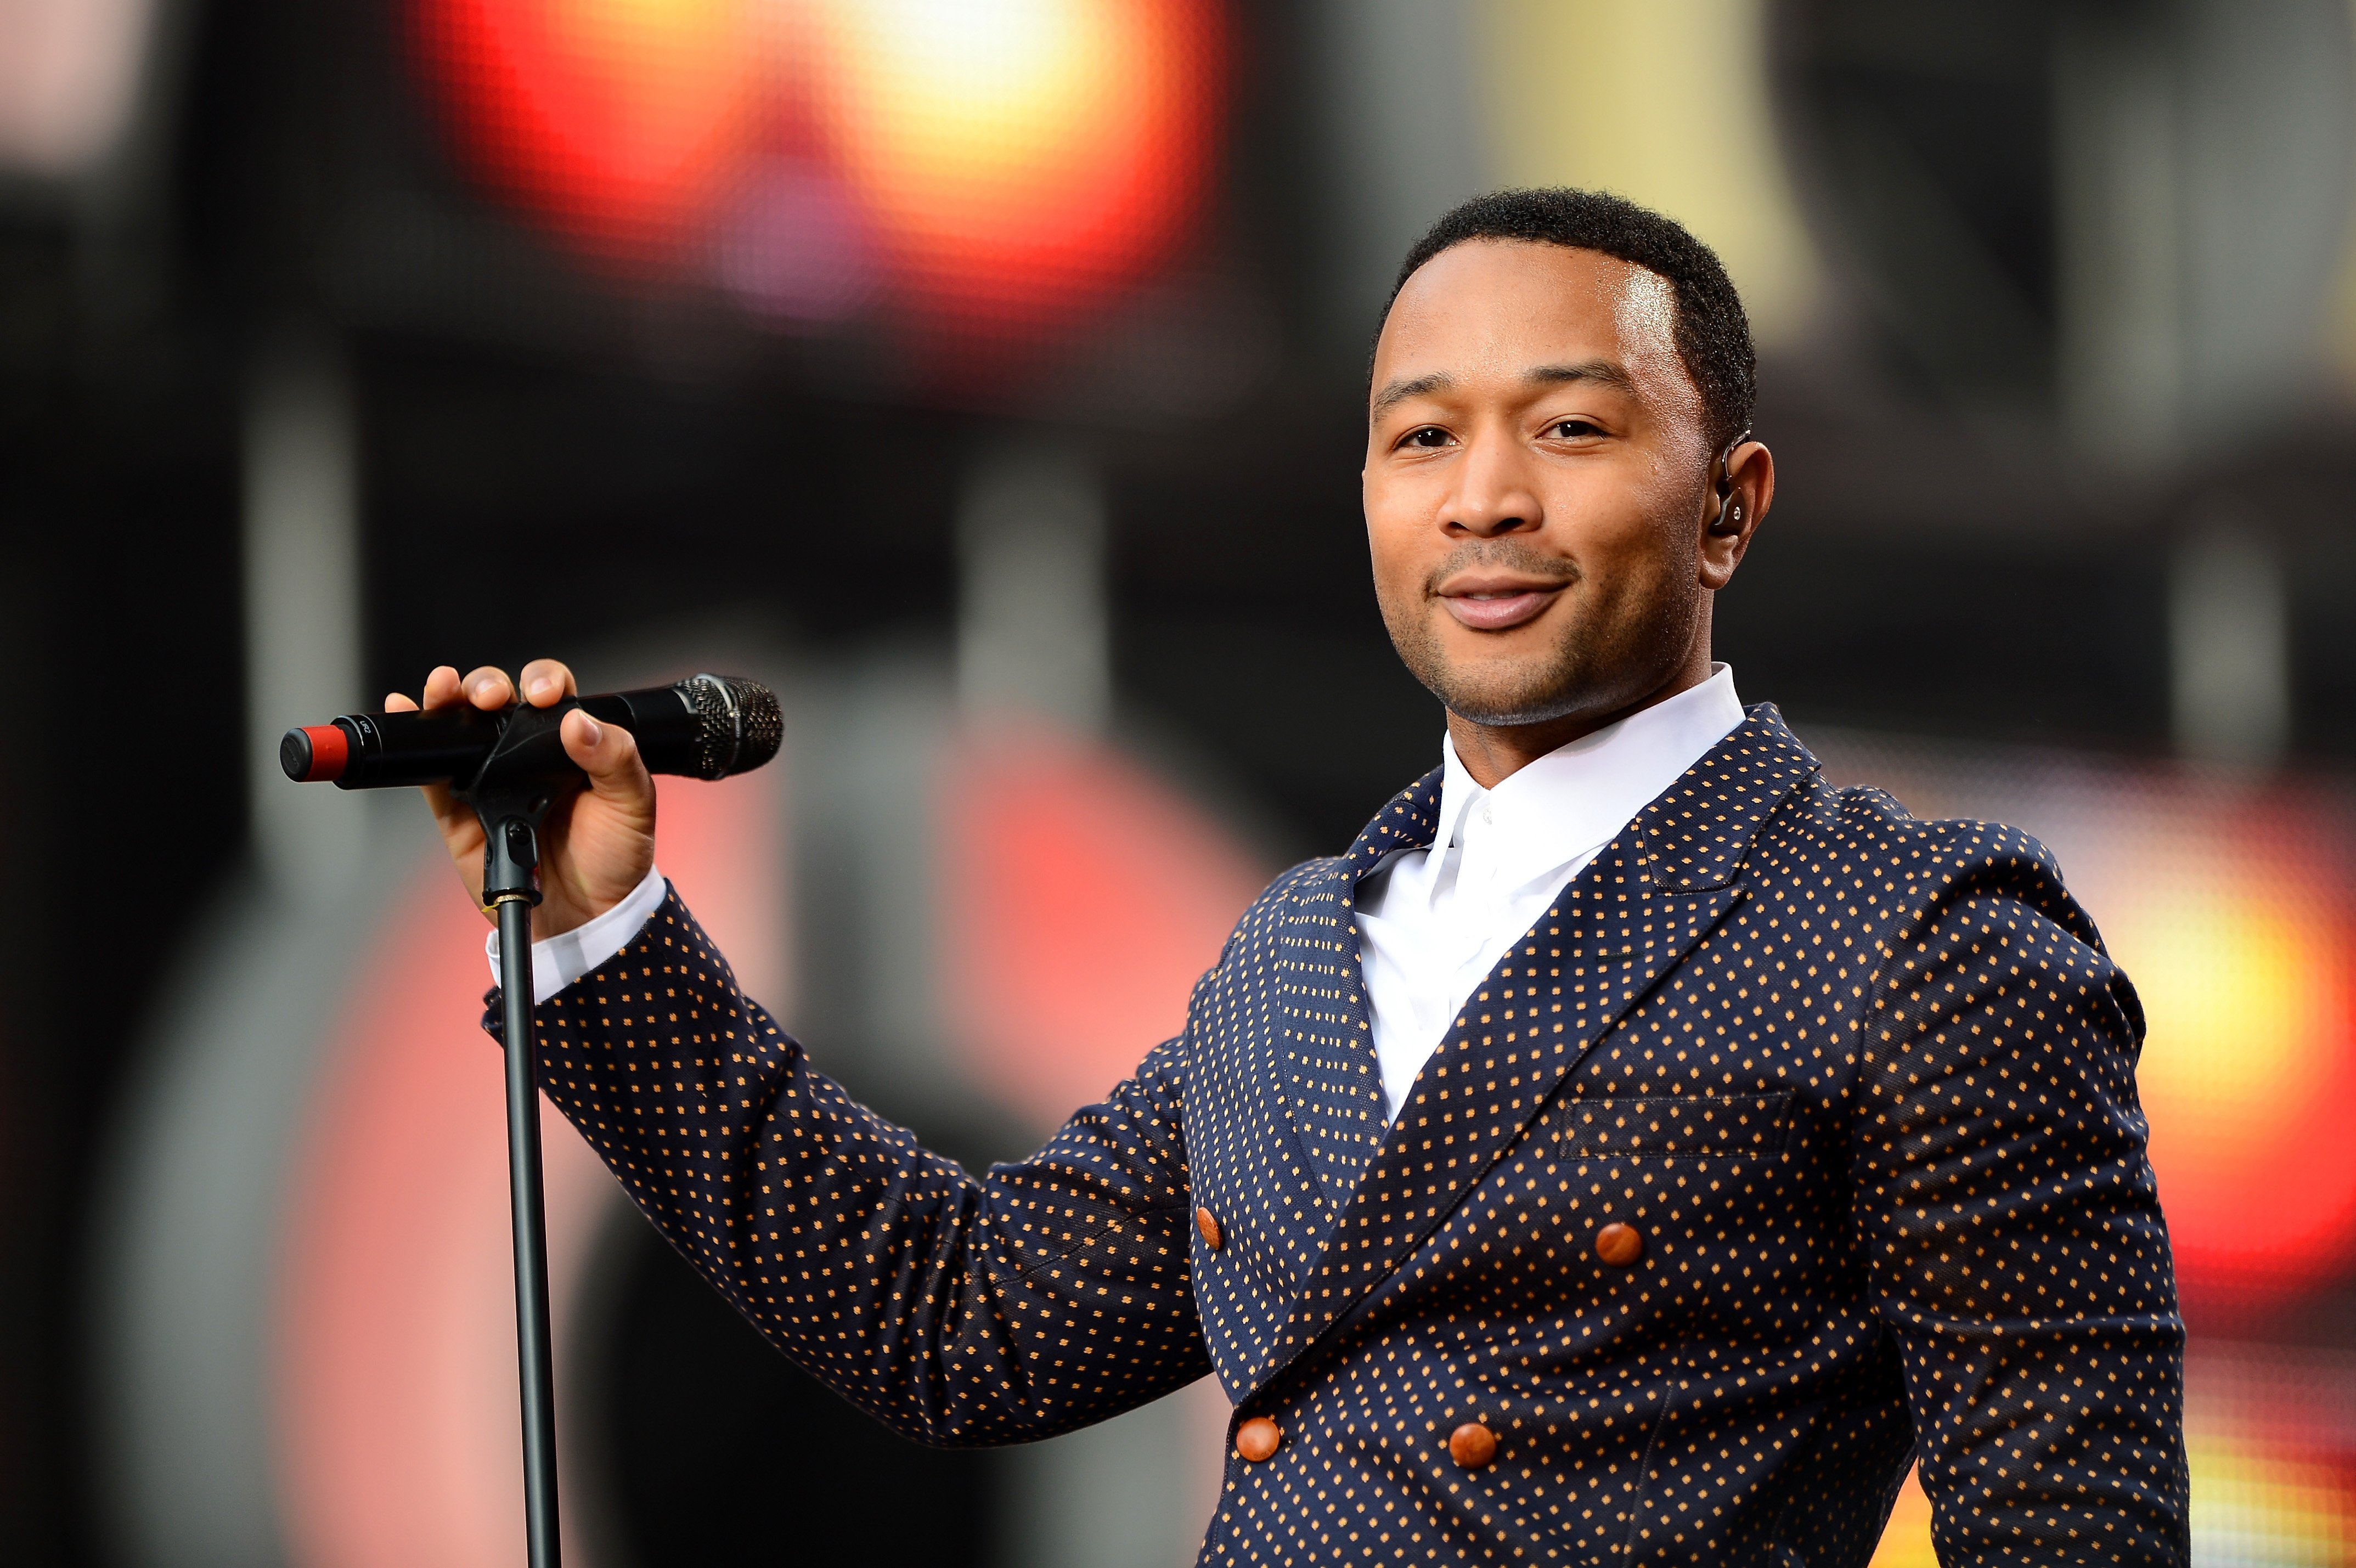 """John Legend performs on stage at the """"Chime For Change: The Sound Of Change Live"""" Concert at Twickenham Stadium on June 1, 2013 